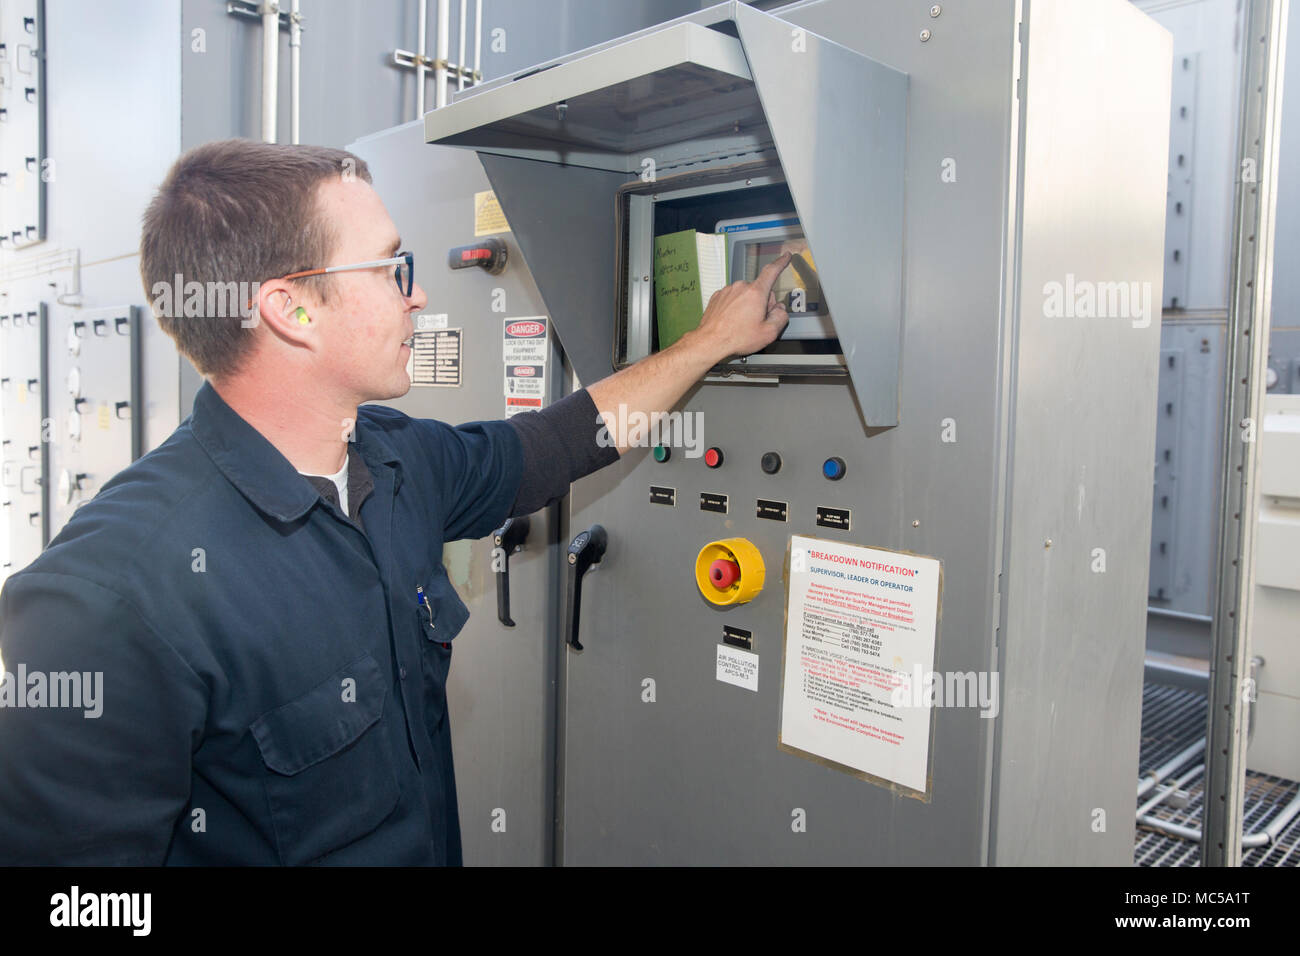 pem stock photos pem stock images alamy daniel coghill industrial electronic controls technician checks on one of the air cleaning towers pem is responsible - Controls Technician Job Description